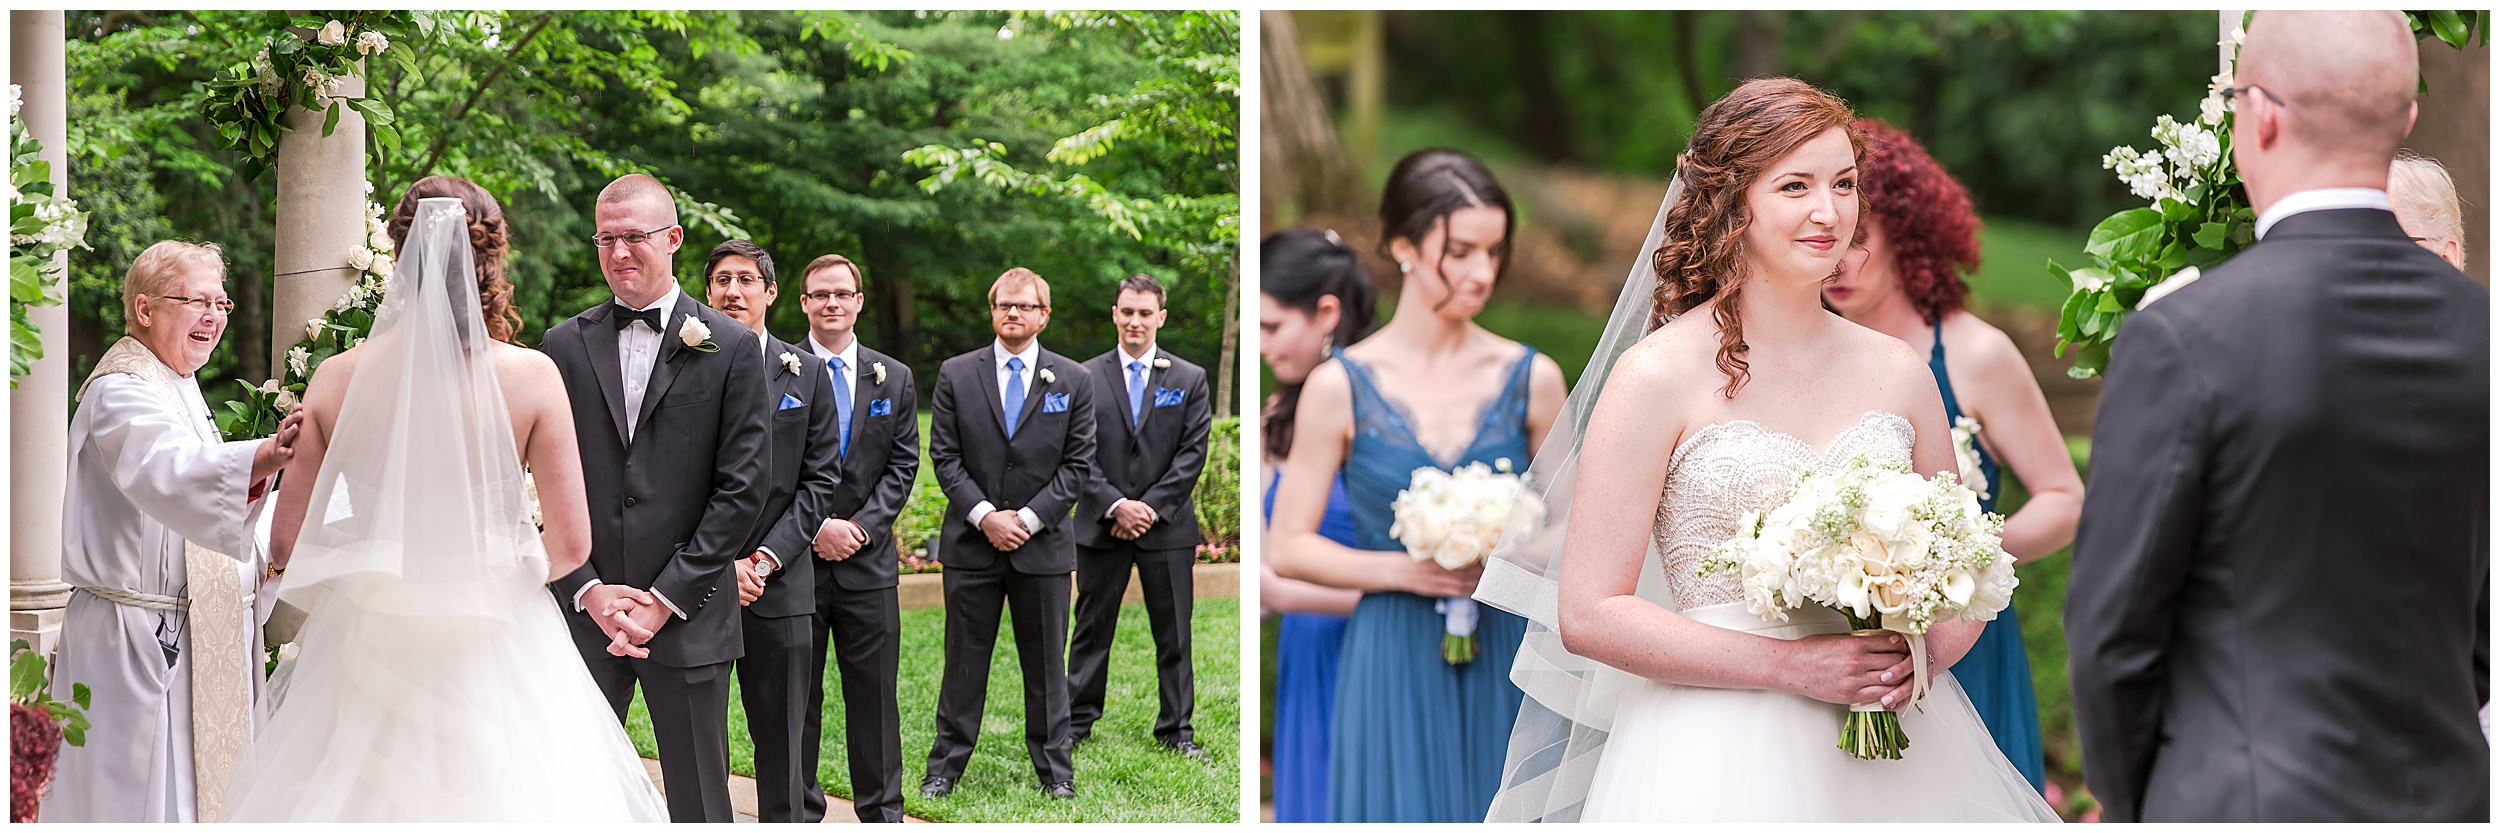 Irish Springtime Omni Shoreham Wedding ceremony-wedding-bride-groom